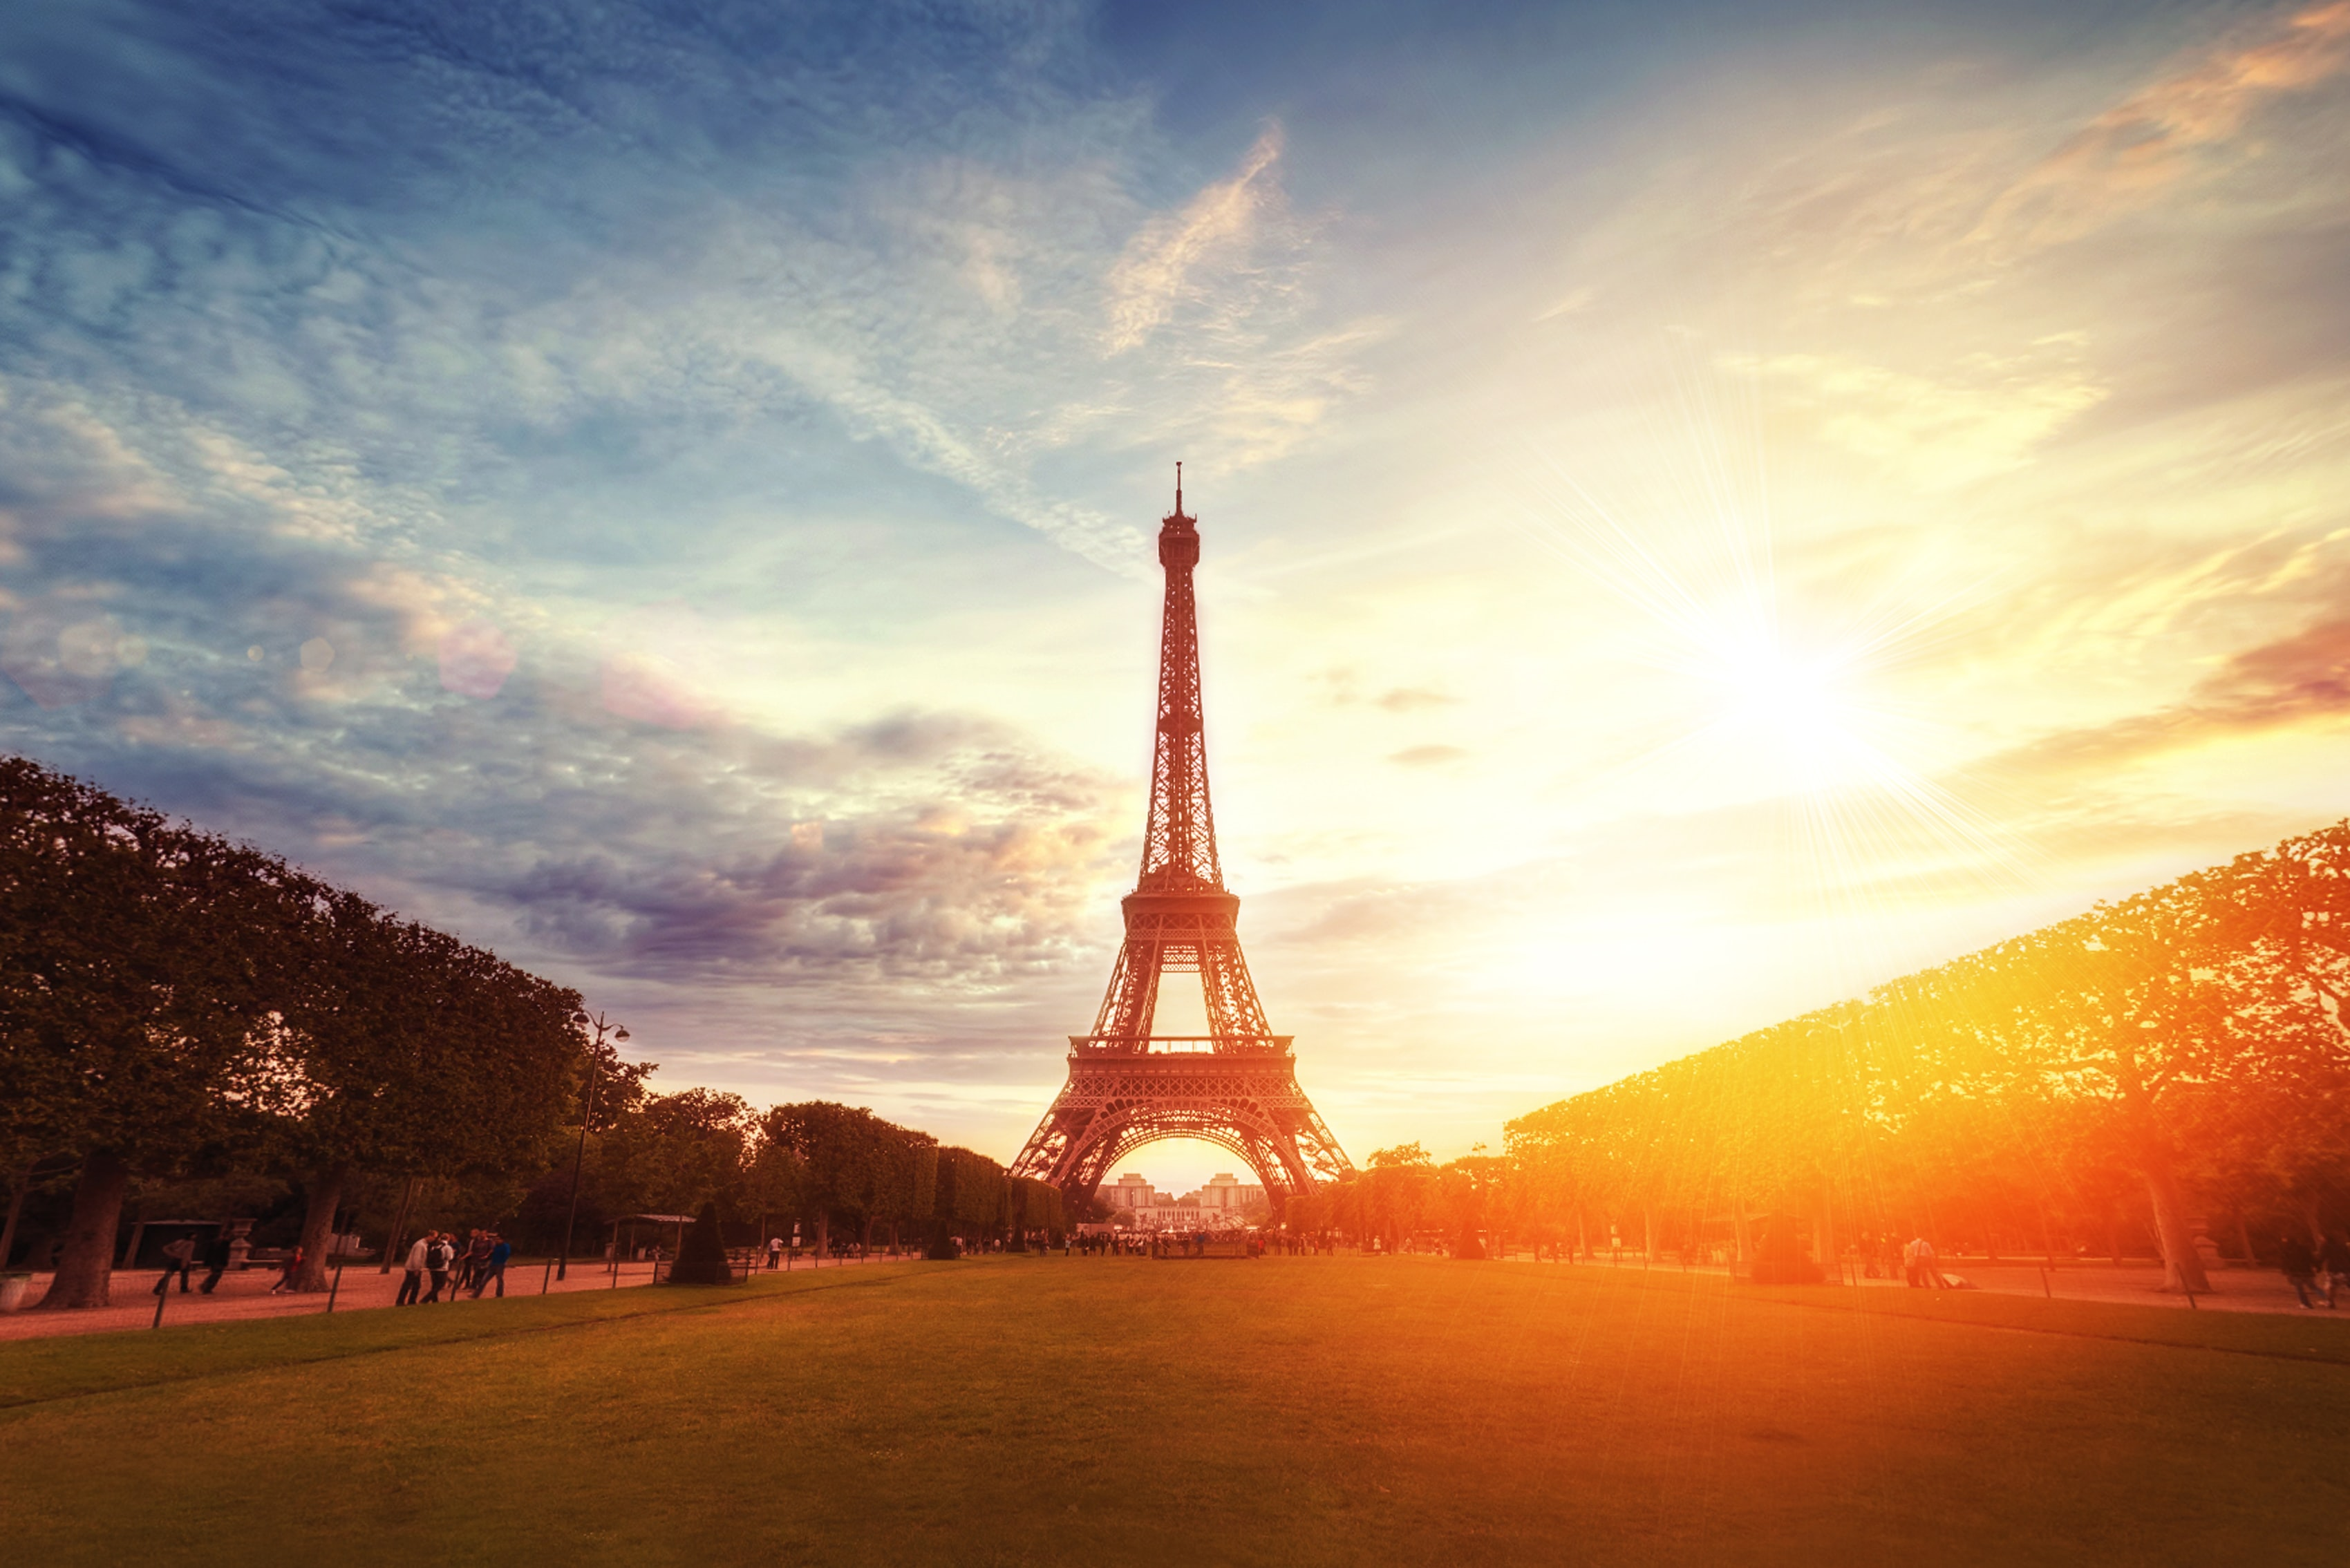 The Eiffell Tower with a blue sky, light clouds, and golden sunset with lens flare.